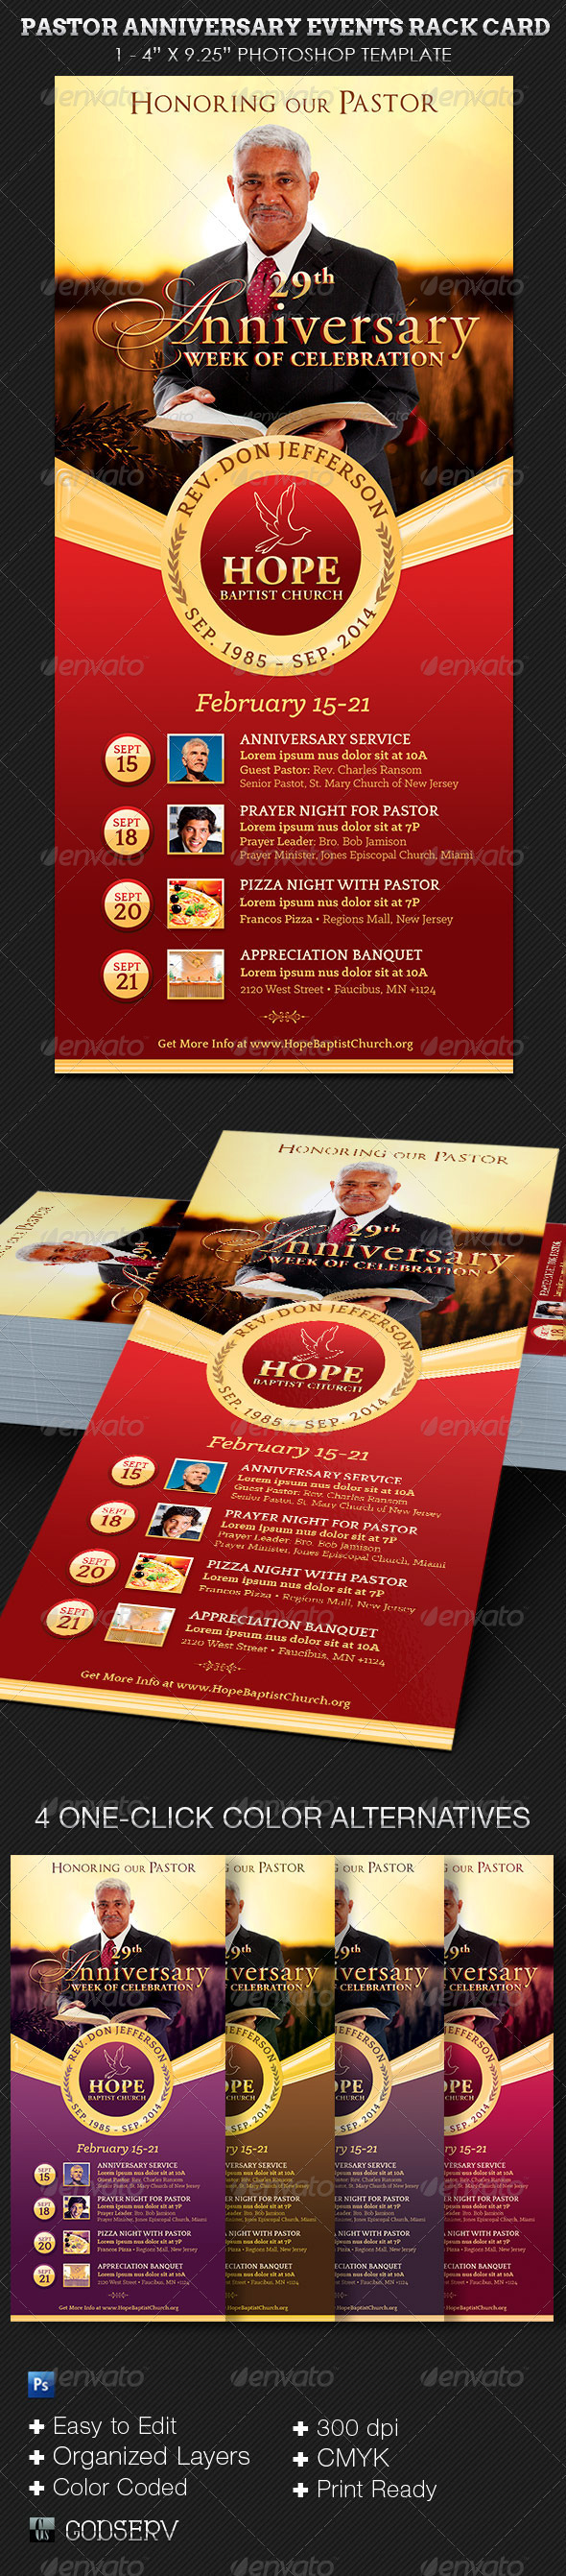 pastor anniversary events rack card template on behance